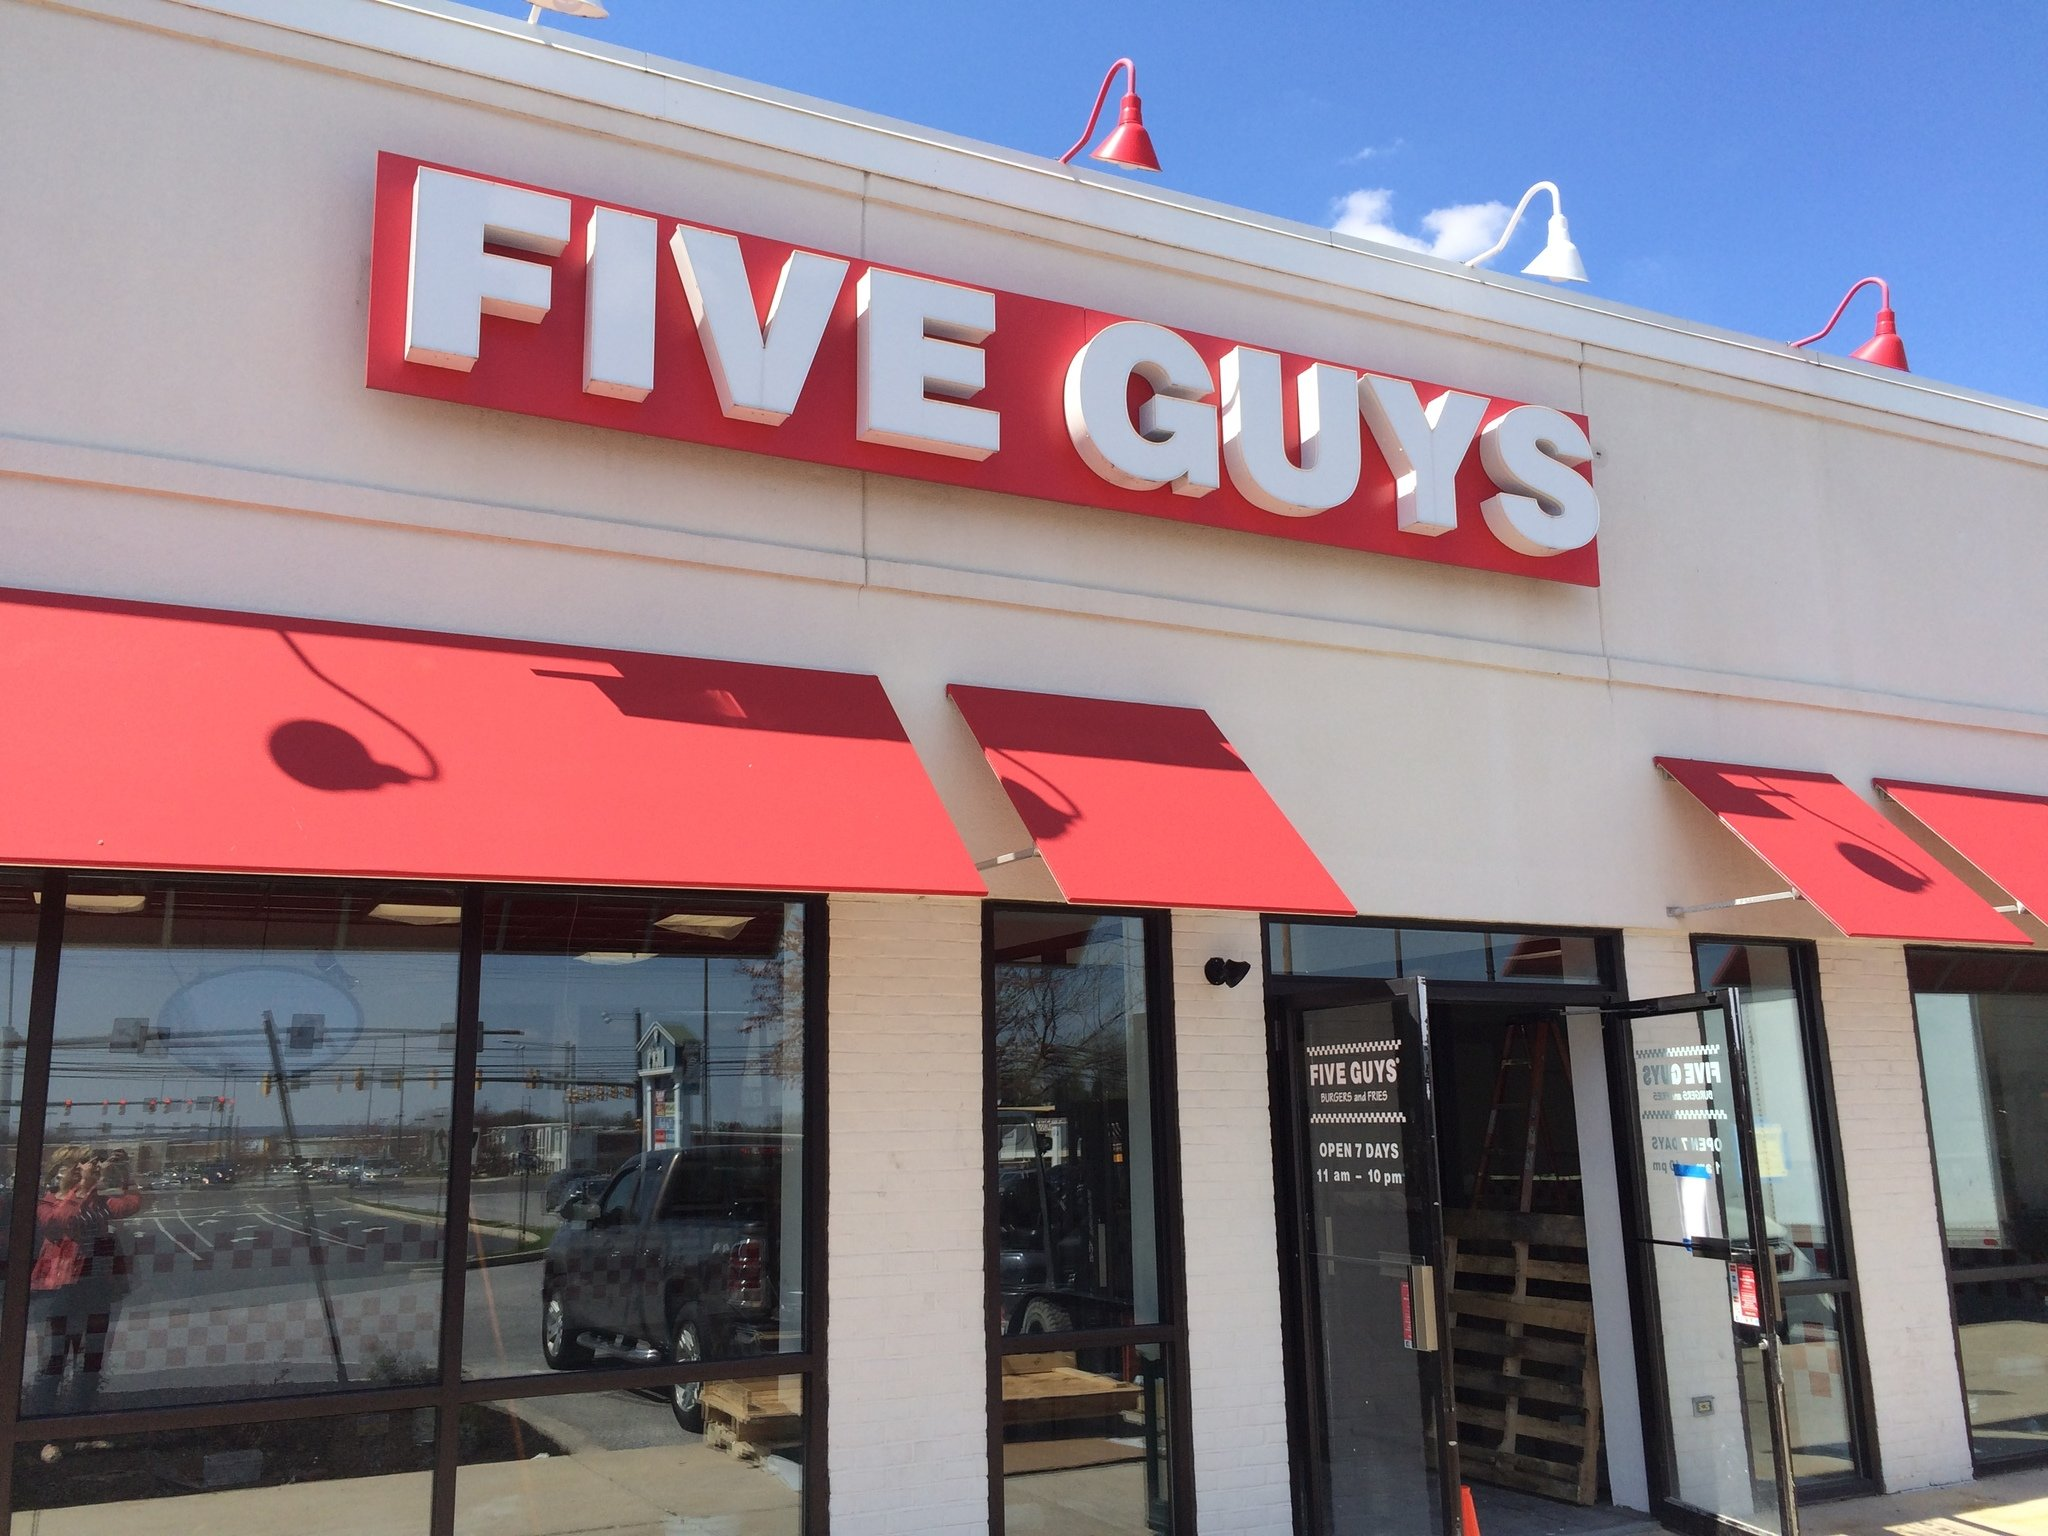 Five-guys-storefront